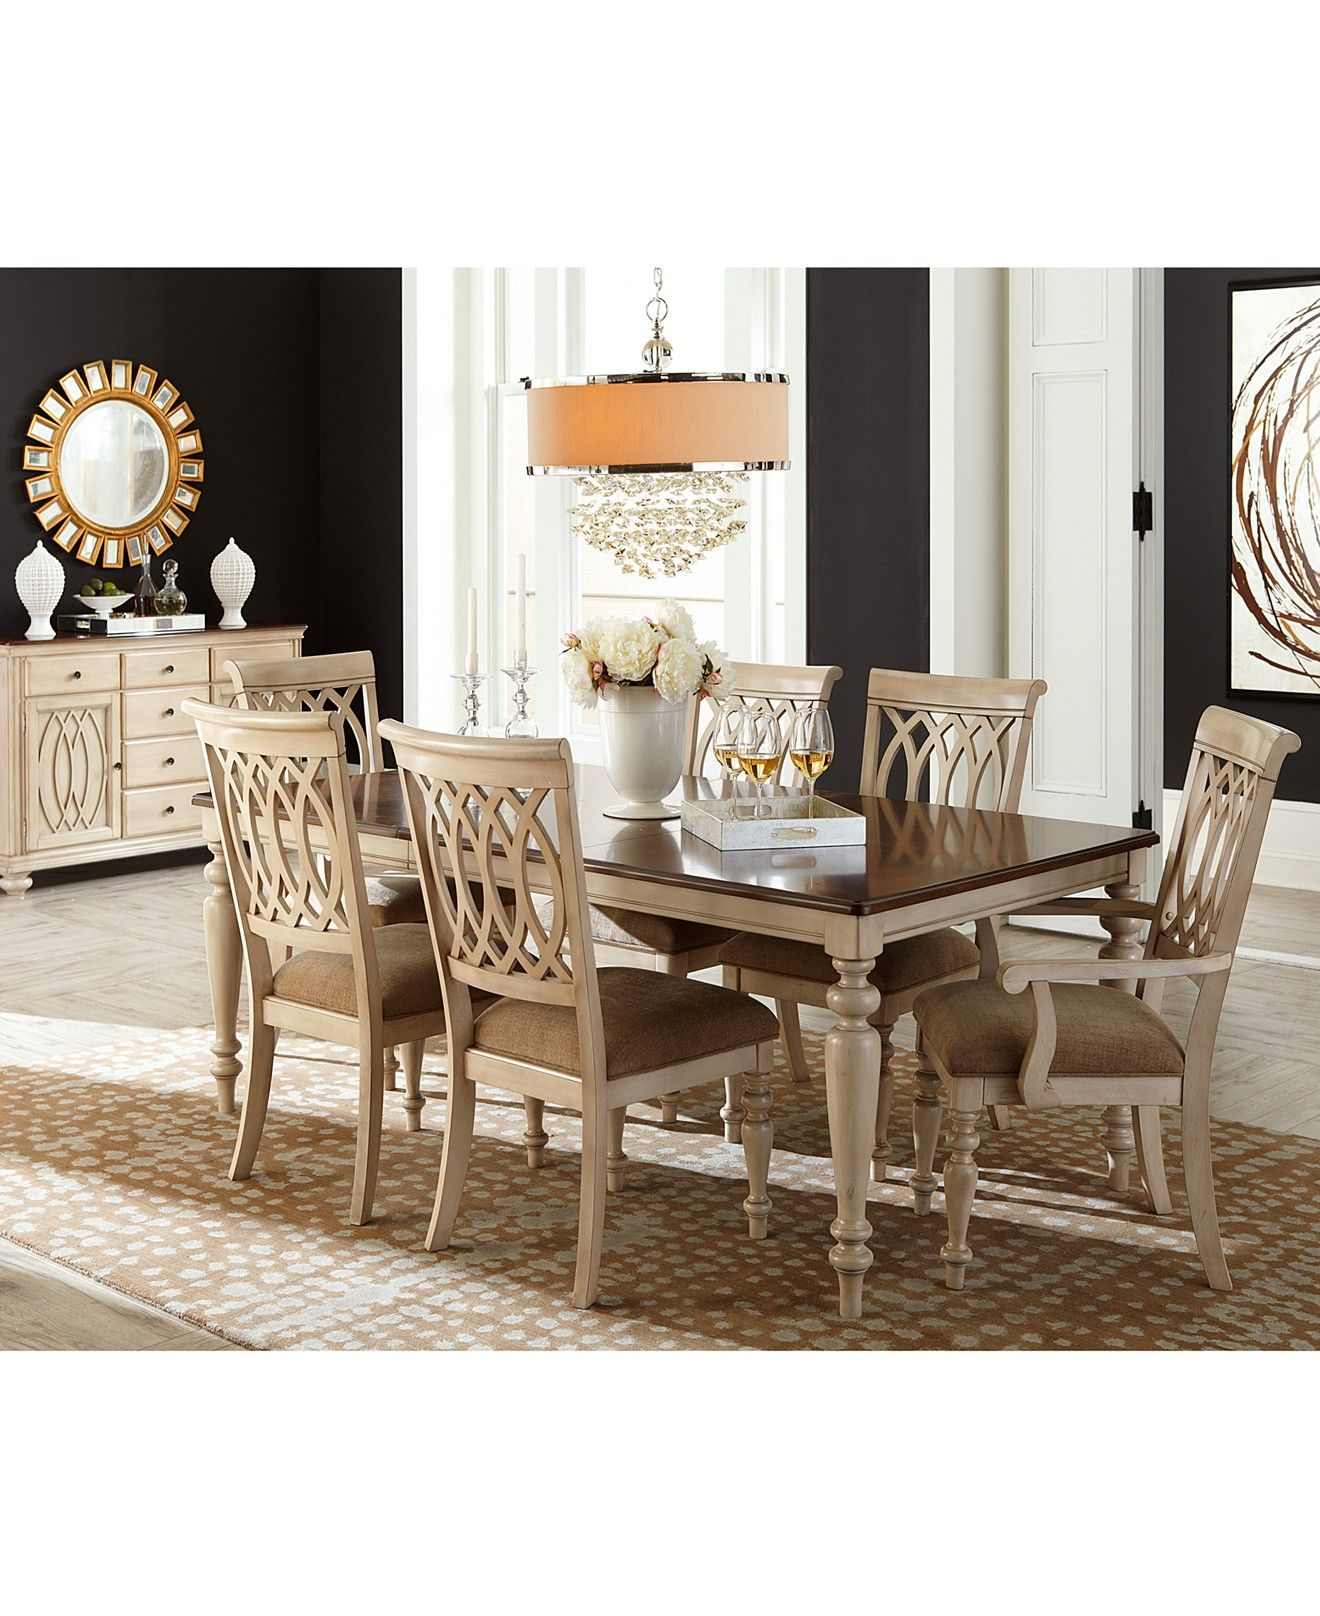 Dovewood Dining Room Furniture Collection